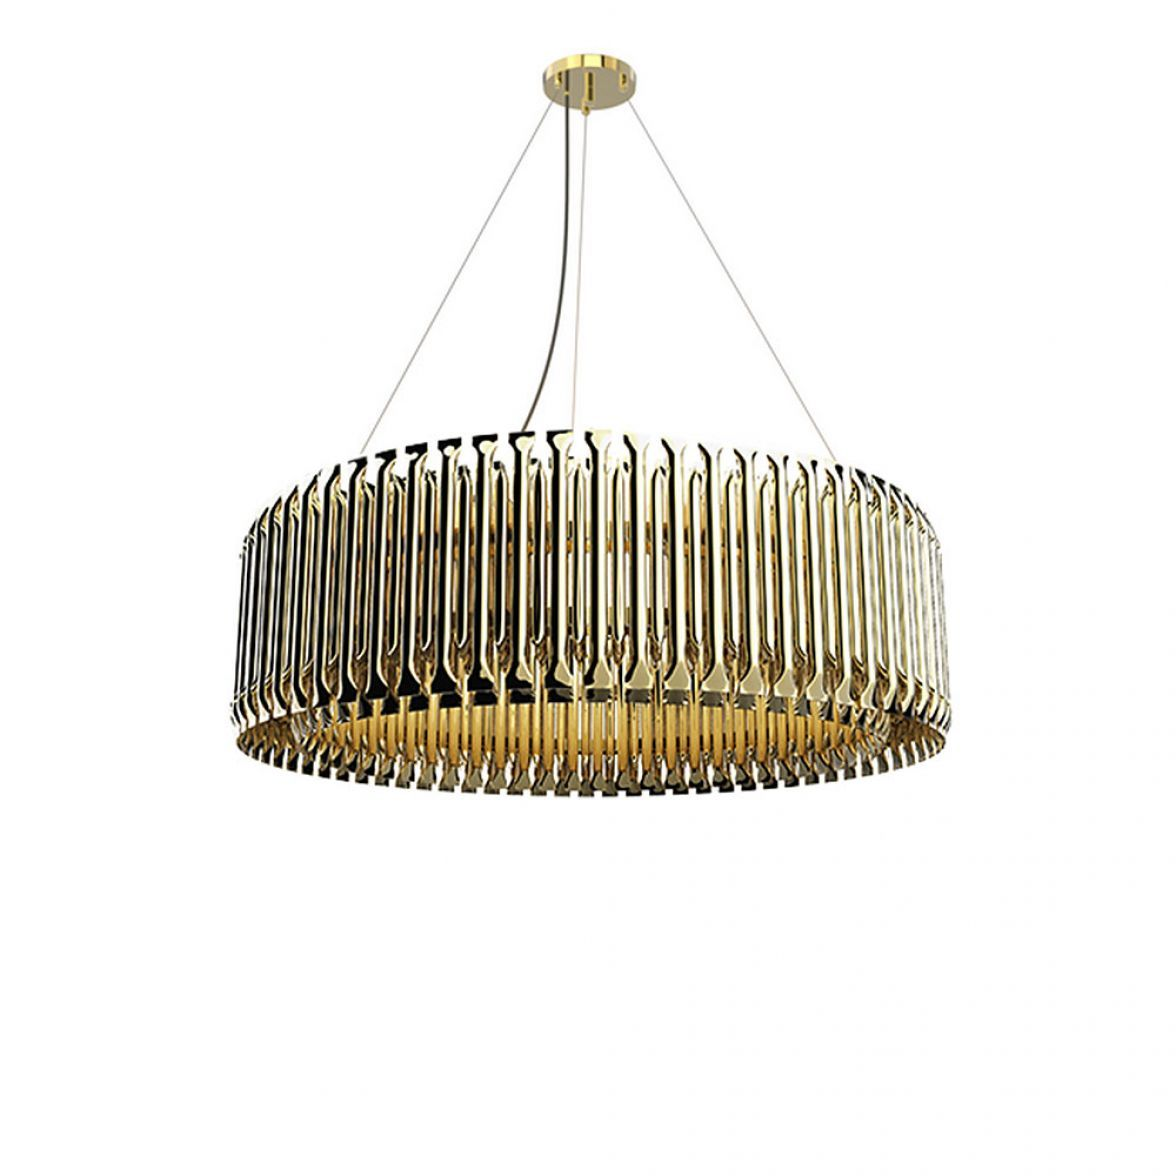 Matheny suspension light фото цена